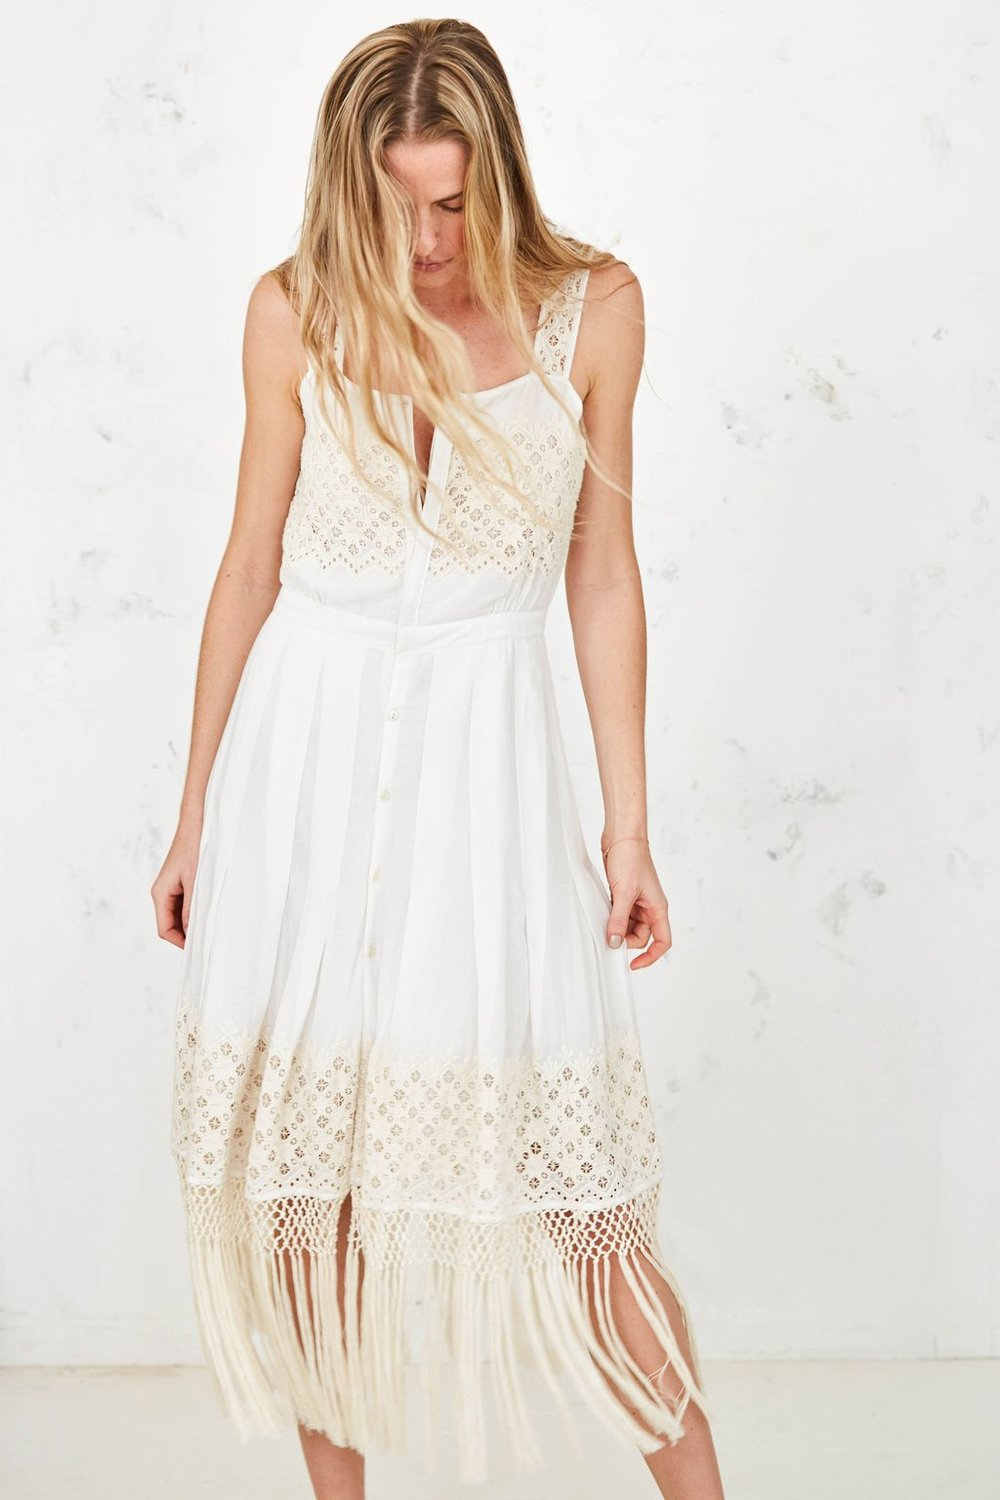 Loveshackfancy_Eve_Dress_Embroidered_Medallion_Full_1024x.jpg